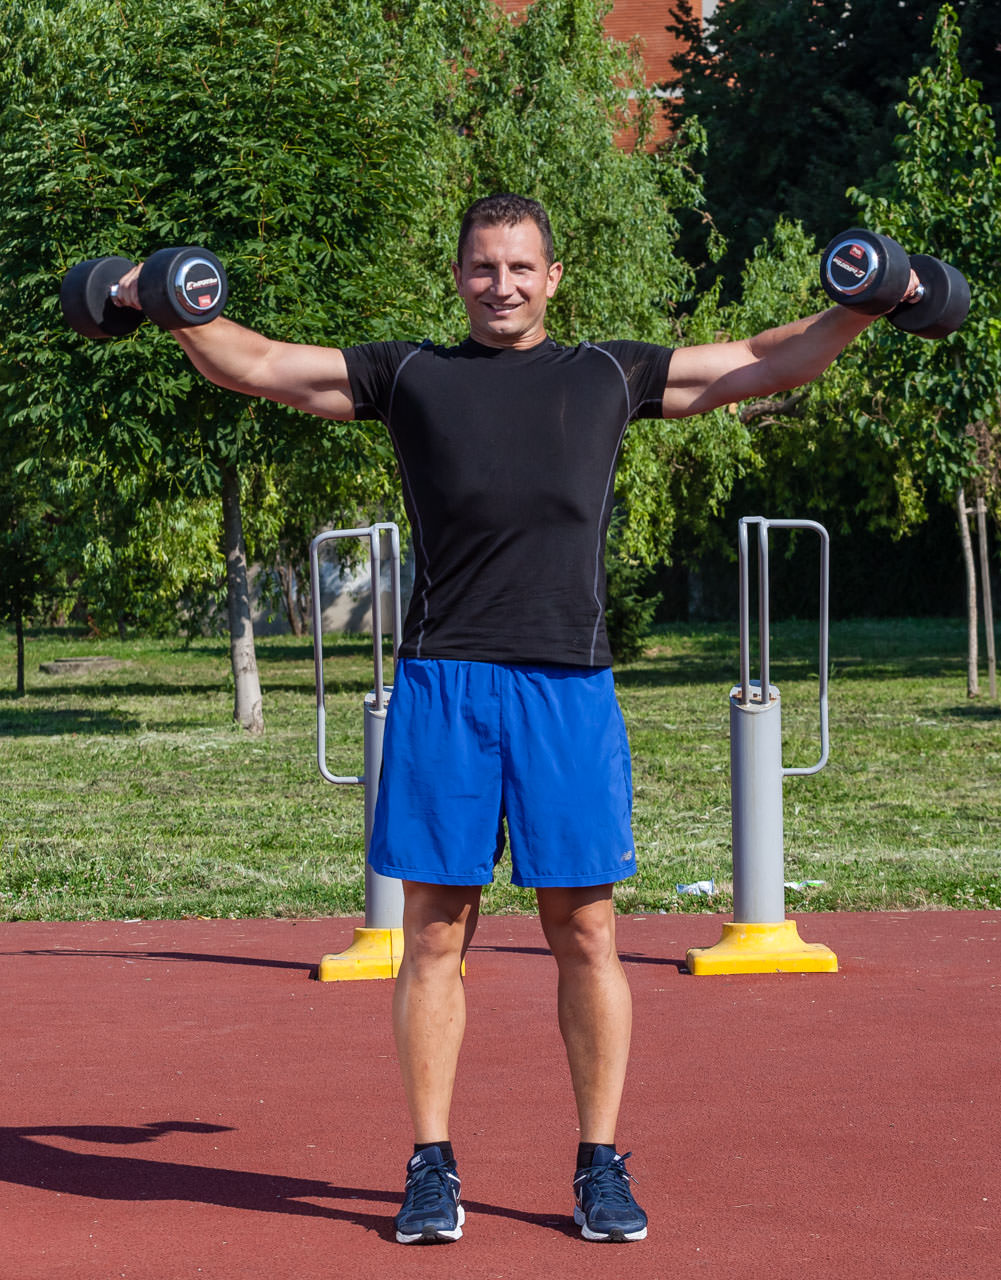 Two-Dumbbell Lateral Raise frame #2